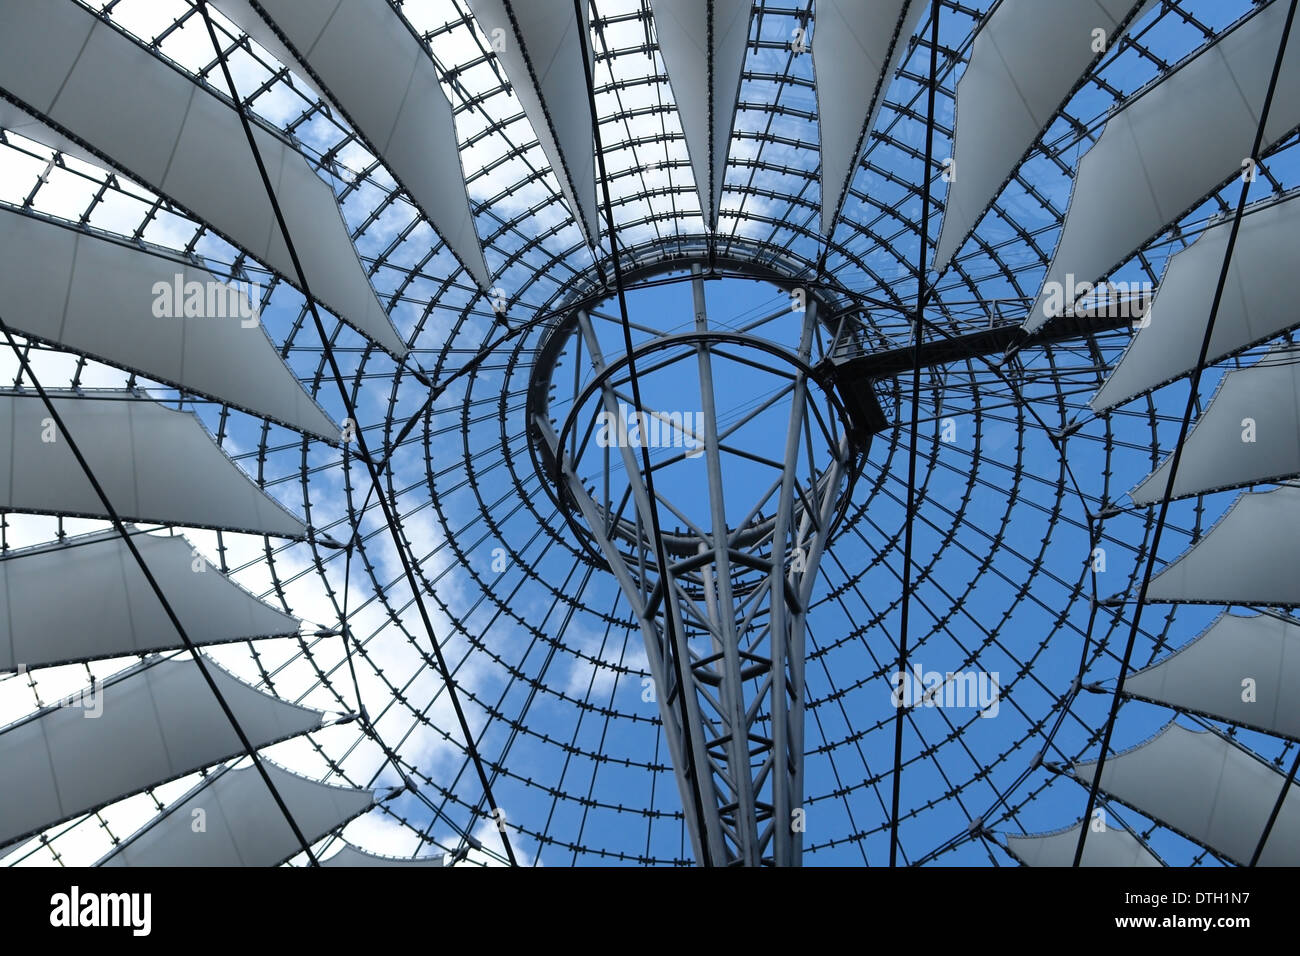 architectural detail of the Sony Center at the 'Potsdamer Platz' in Berlin (Germany) - Stock Image